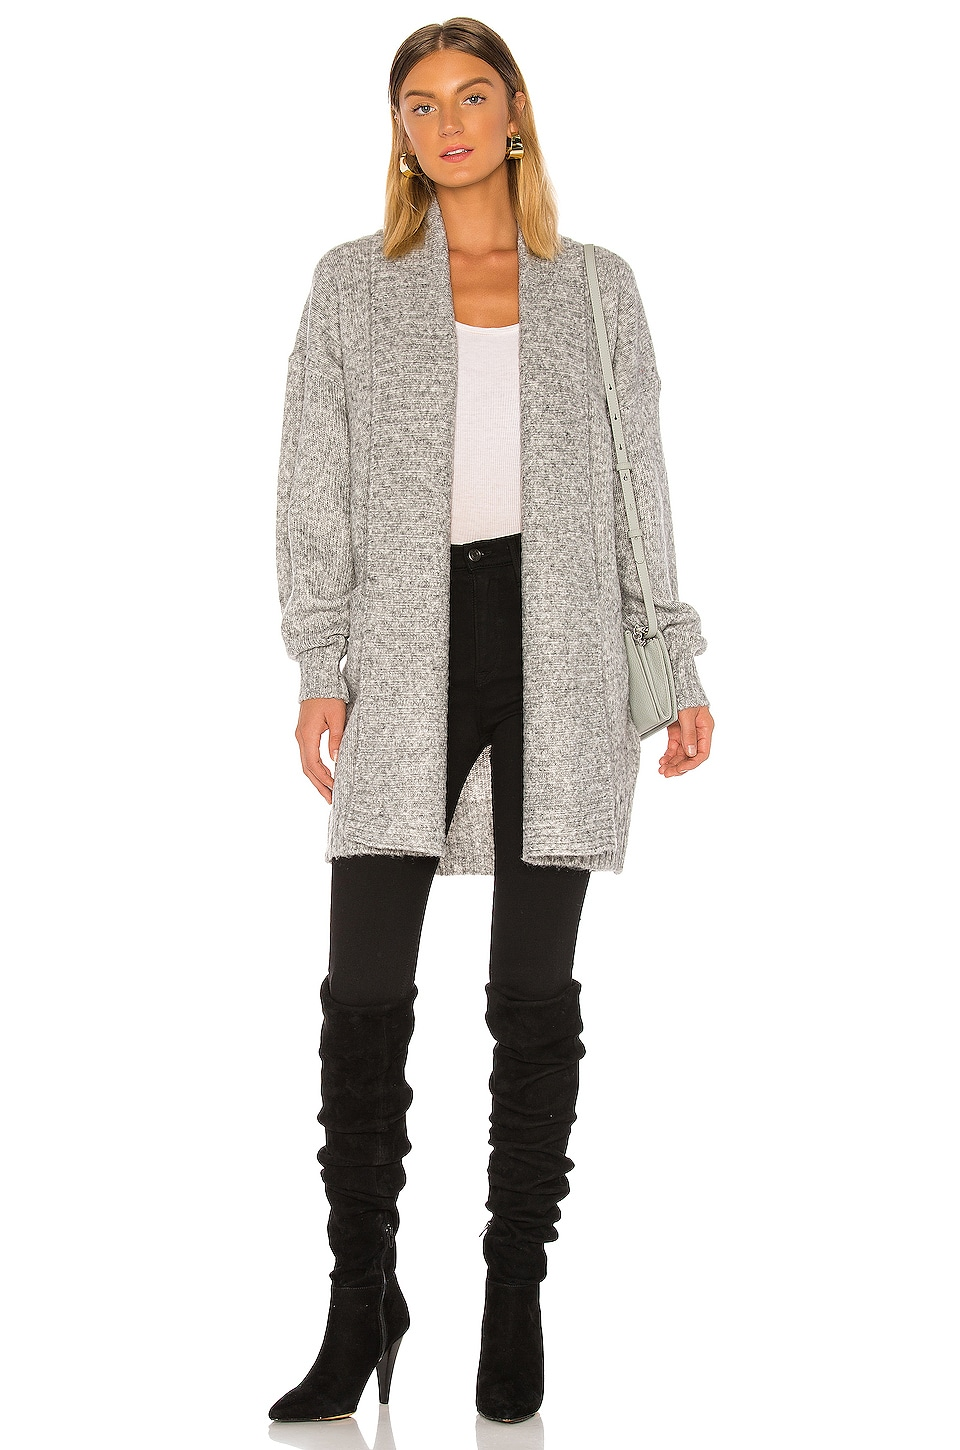 Joie Gwenna Cardigan in Deco